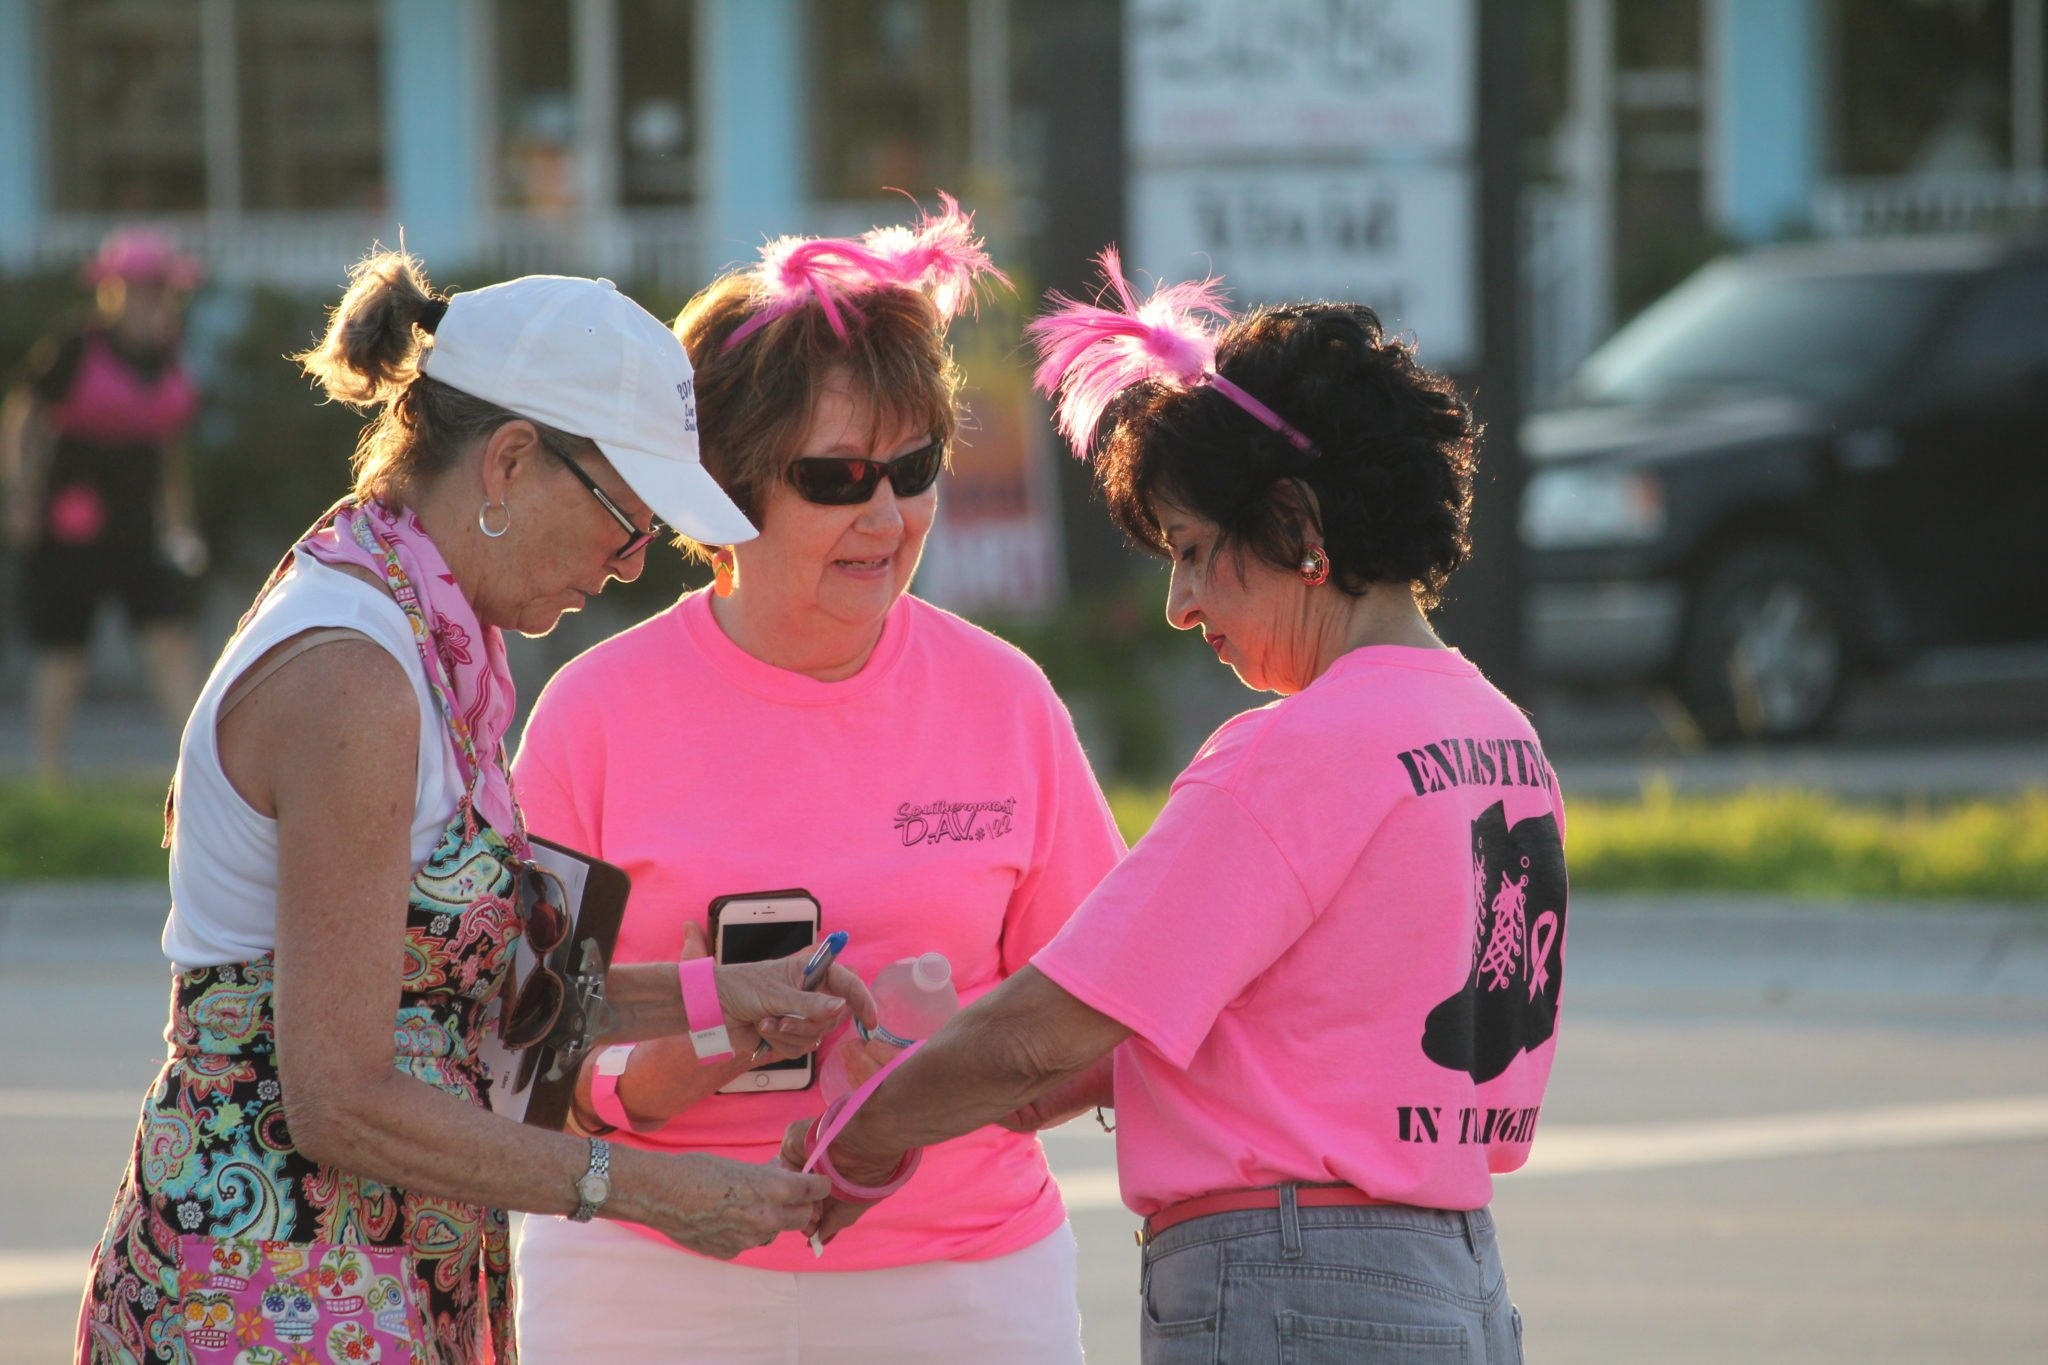 Debbie Hegland, left, and Helen Catchpole, right, and a friend put on their pink bracelets to walk.